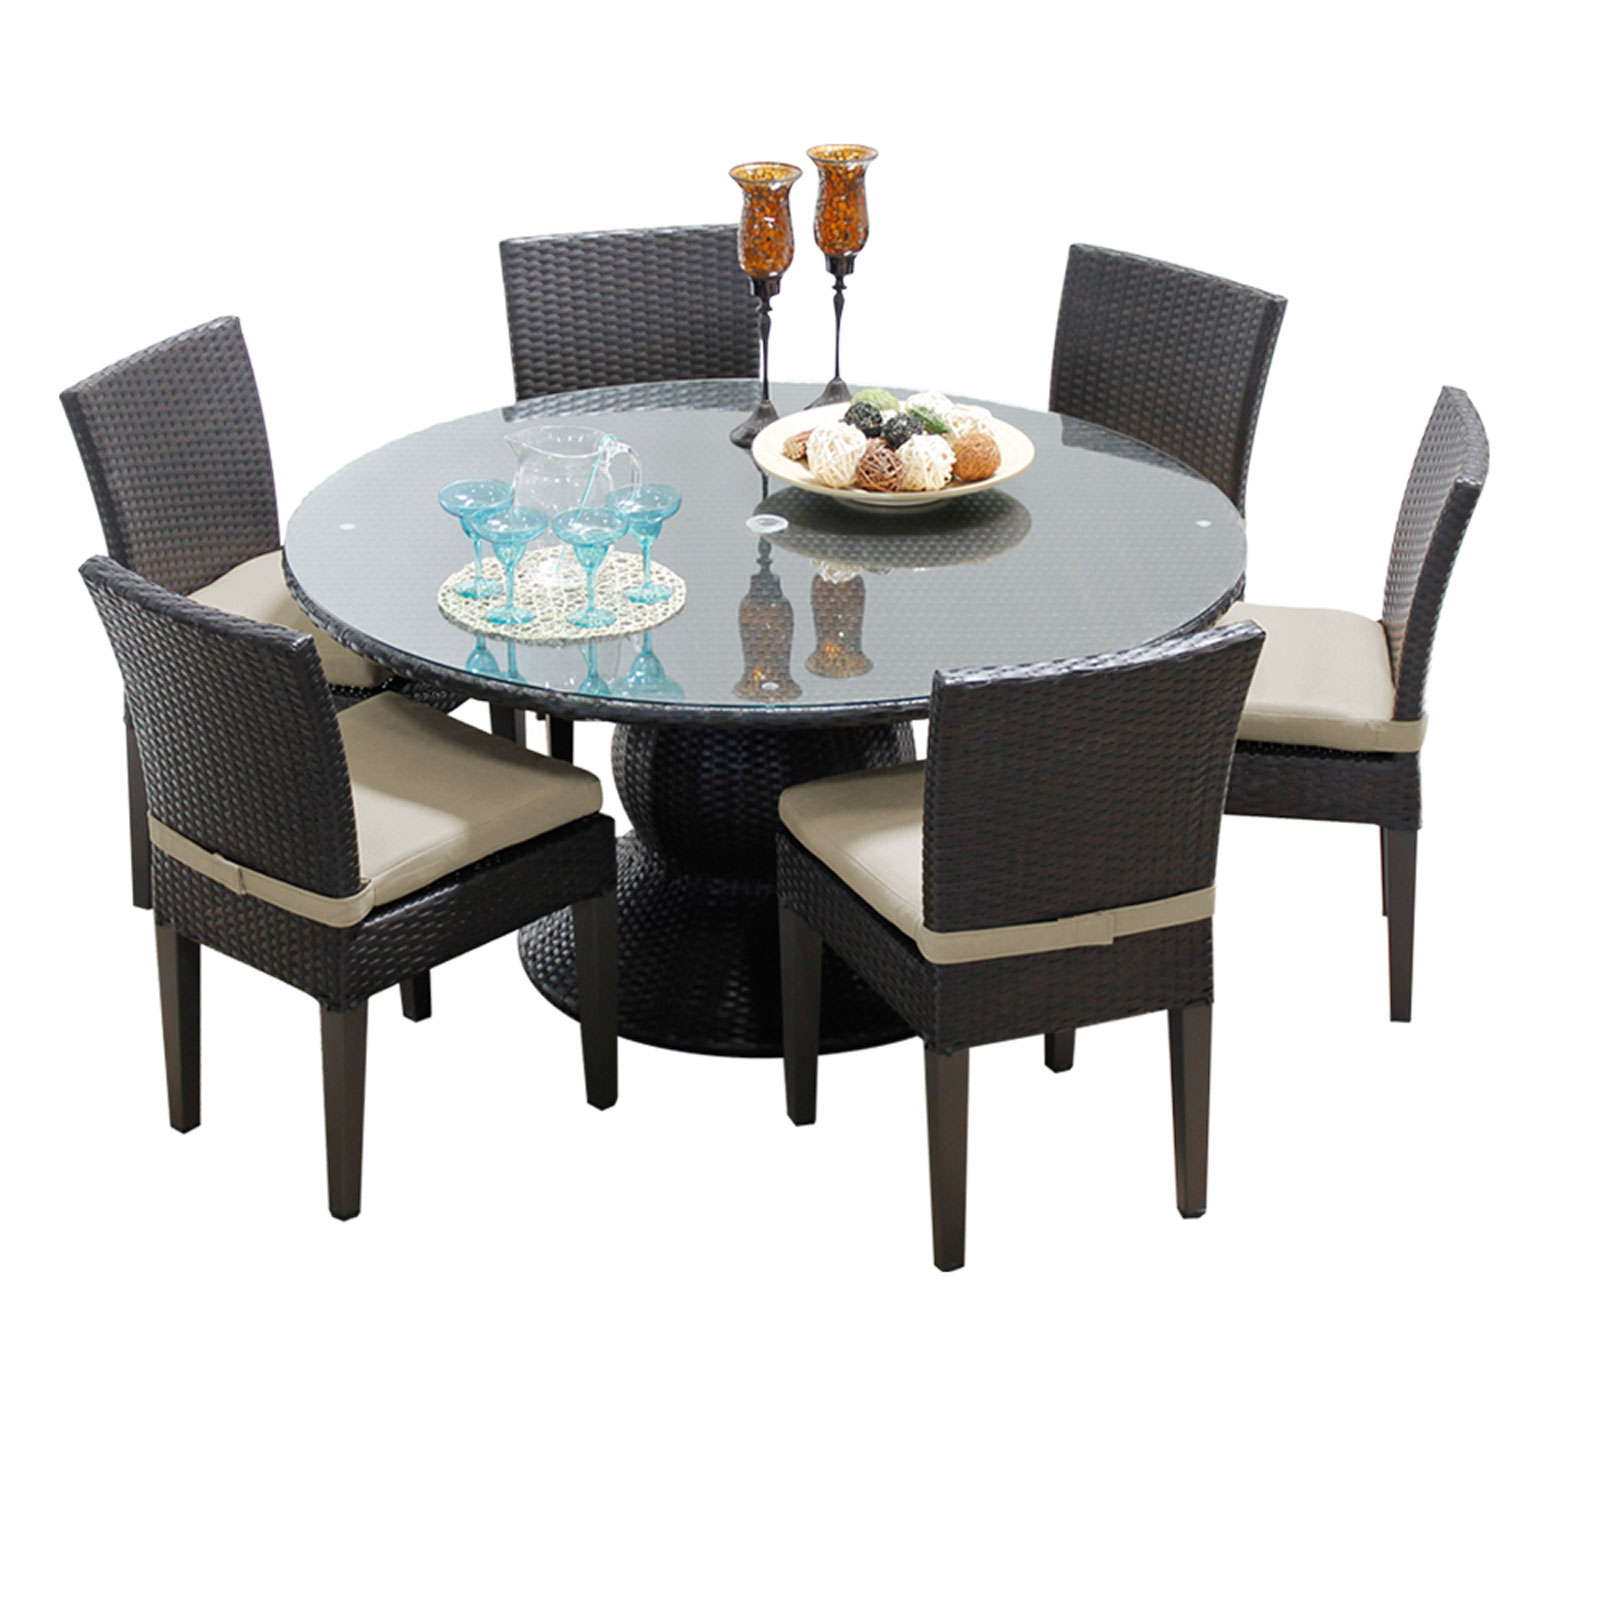 Pluto 60 Inch Outdoor Patio Dining Table With 6 Chairs